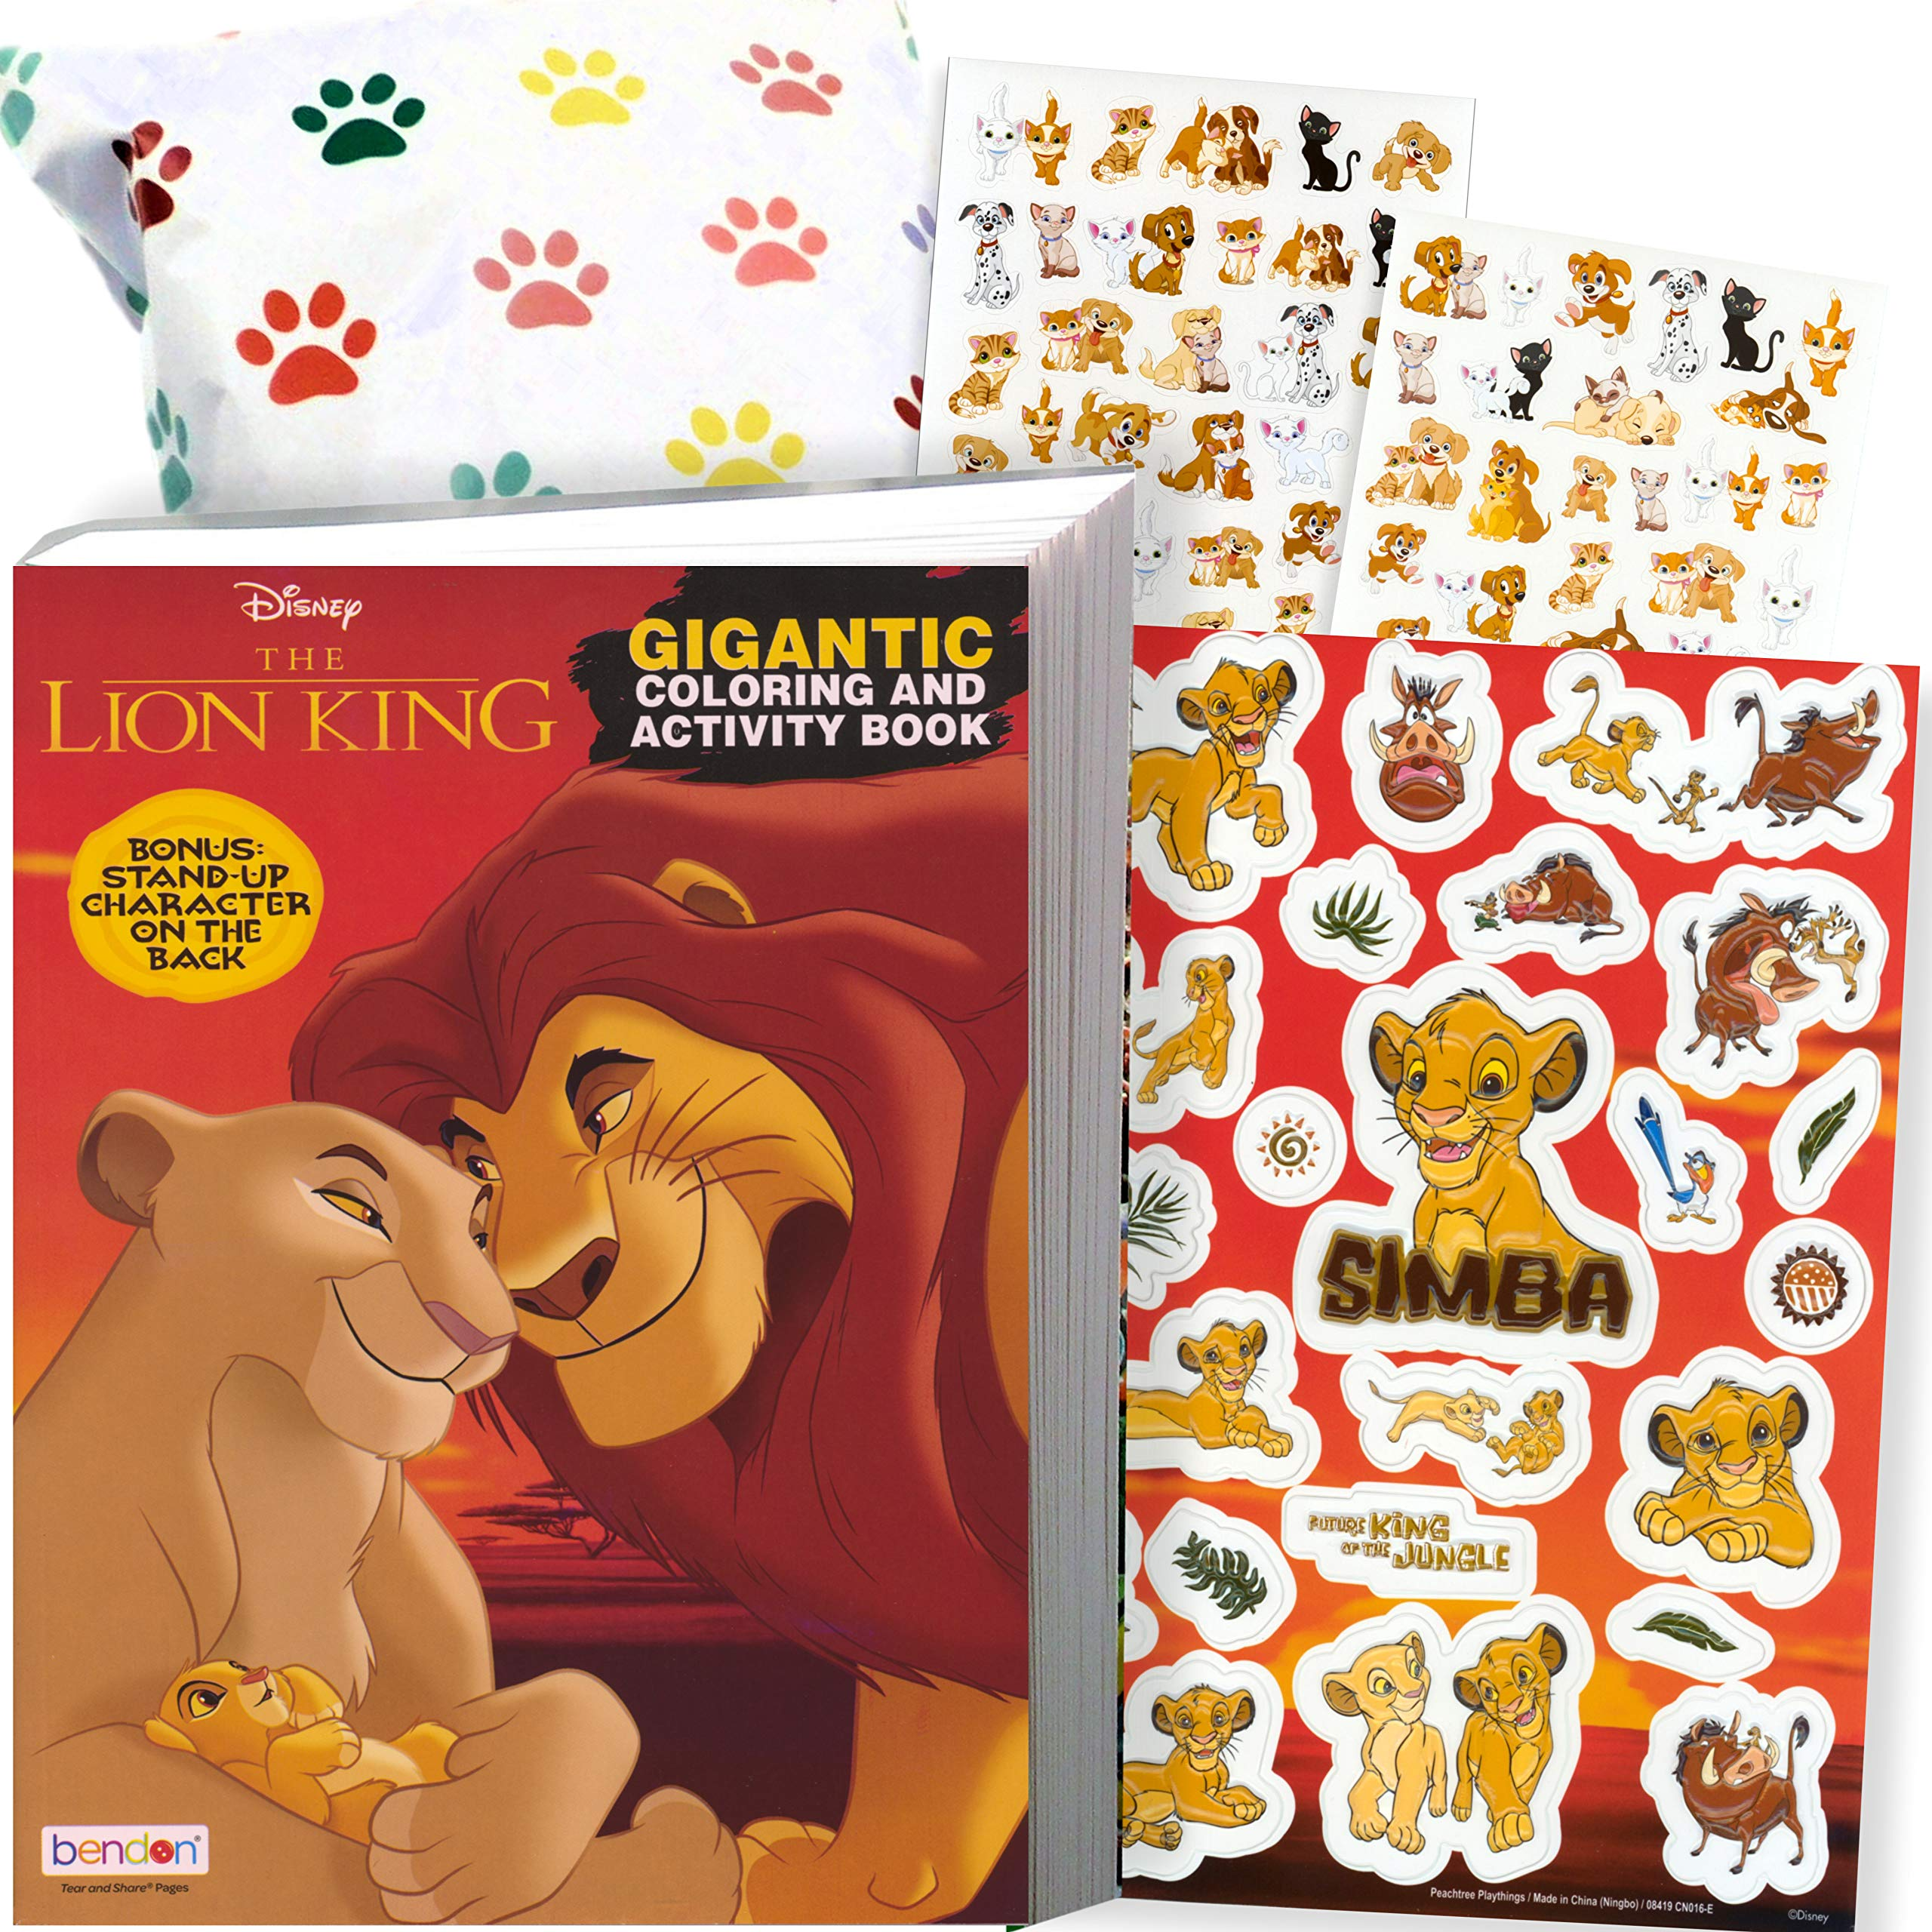 Disney Lion King Coloring Book and Stickers Gift Set - Bundle Includes Gigantic 192 pg Coloring Book with Stickers in Specialty Gift Bag (Lion King)